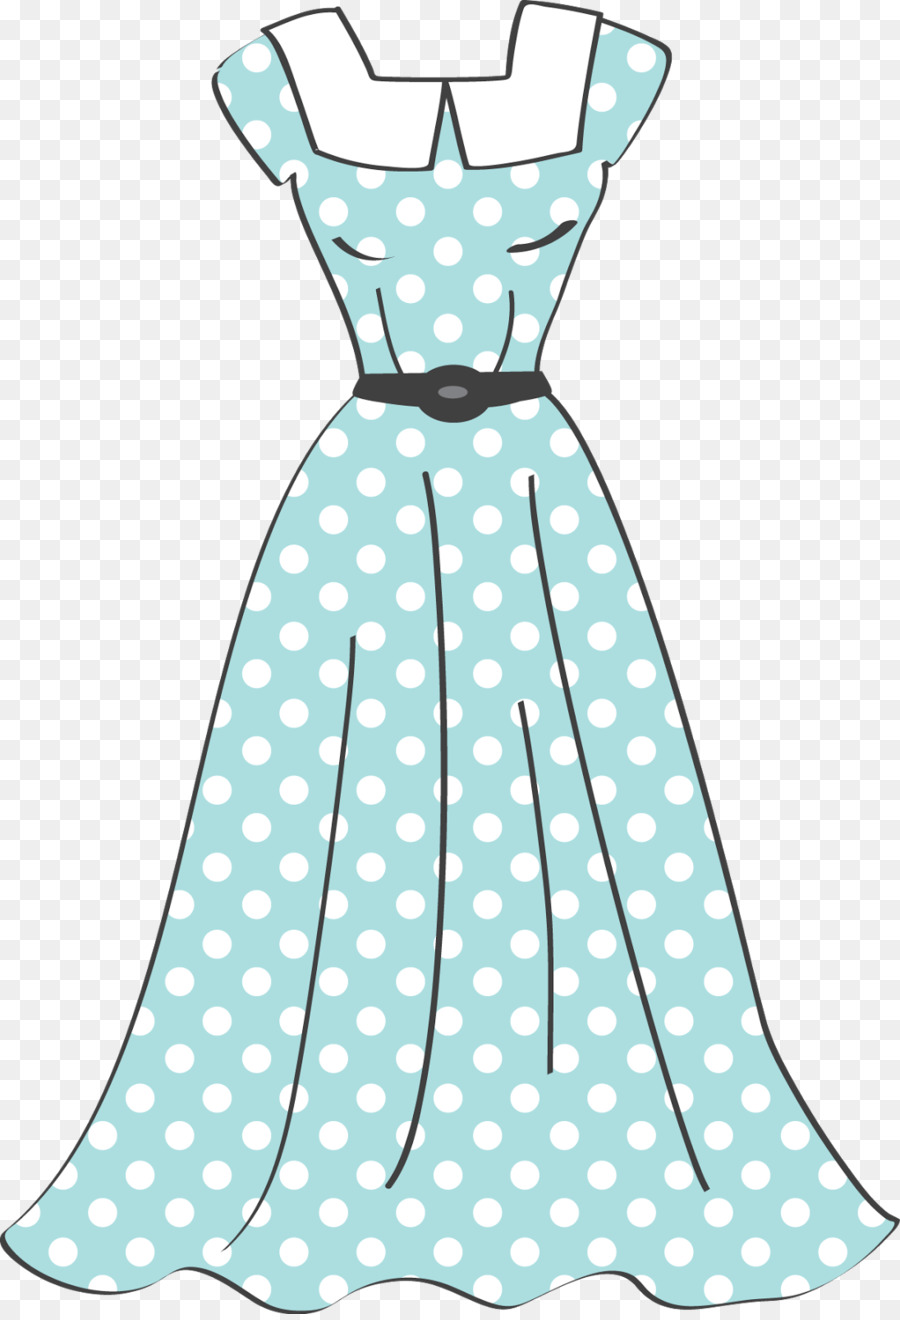 Doll Dress Png Images - Clothing Doll Dress Sneakers Clip art - clothes png download ...